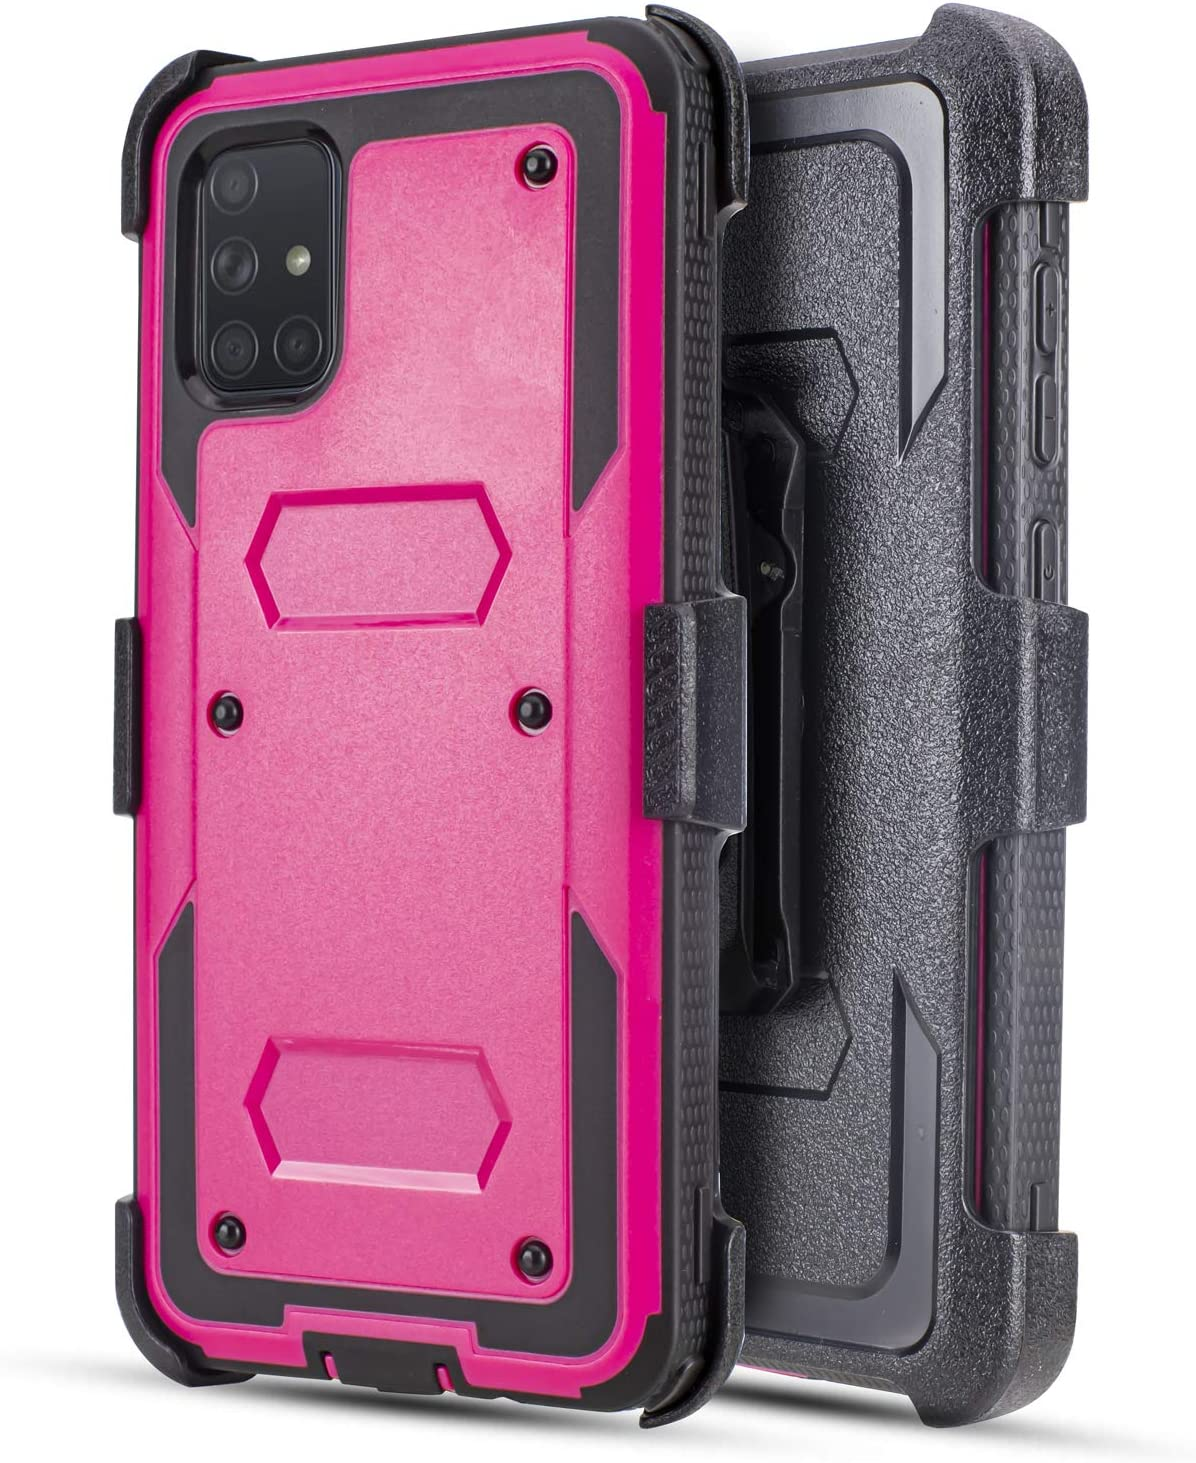 Customerfirst Samsung Galaxy A51 Case (Does NOT FIT A50) Built-in [Screen Protector] Heavy Duty Holster Cover [Belt Clip][Kickstand] (Bright Pink)